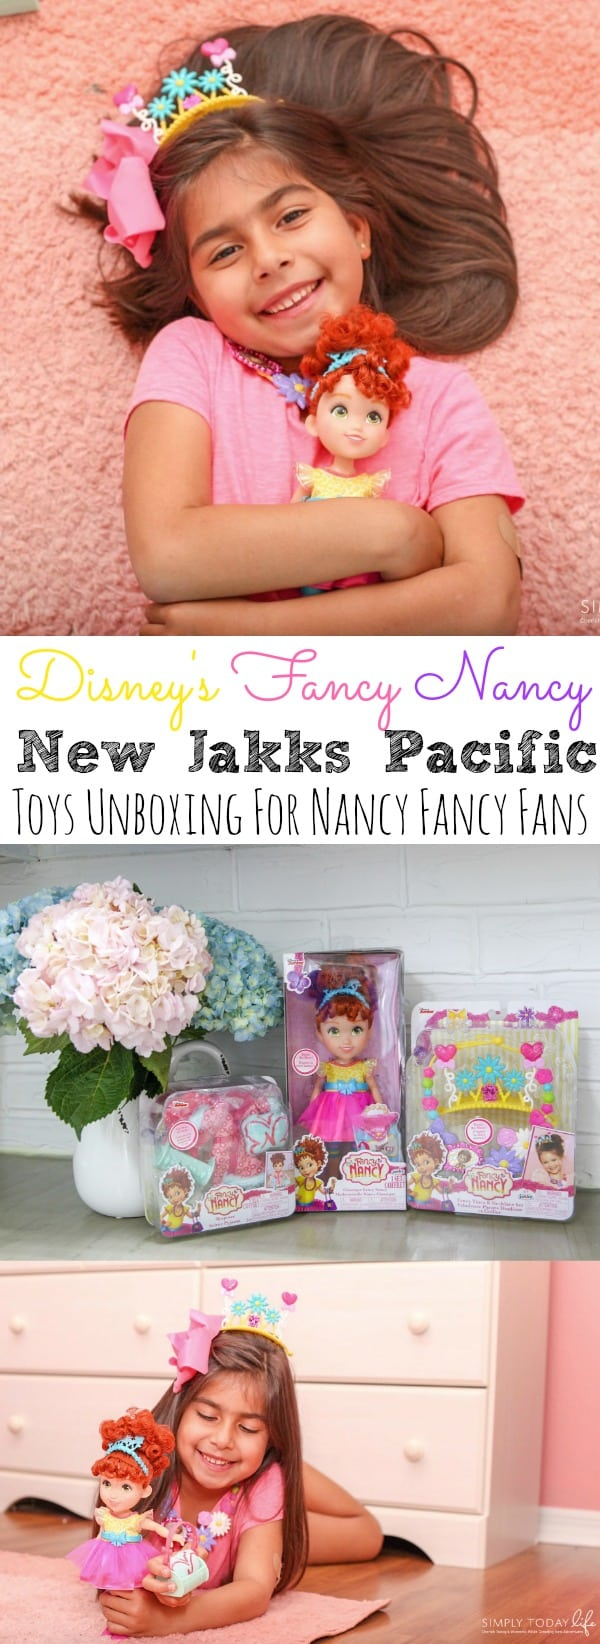 Is your child a fan of the new Disney Junior Fancy Nancy? Then you need to check out this Disney's Fancy Nancy New Jakks Pacific Toys Unboxing! It's every little girl pink and Fantastique dream! - simplytodaylife.com #FancyNancy #JakksFancyNancy #DisneyToys #FancyNancyToys